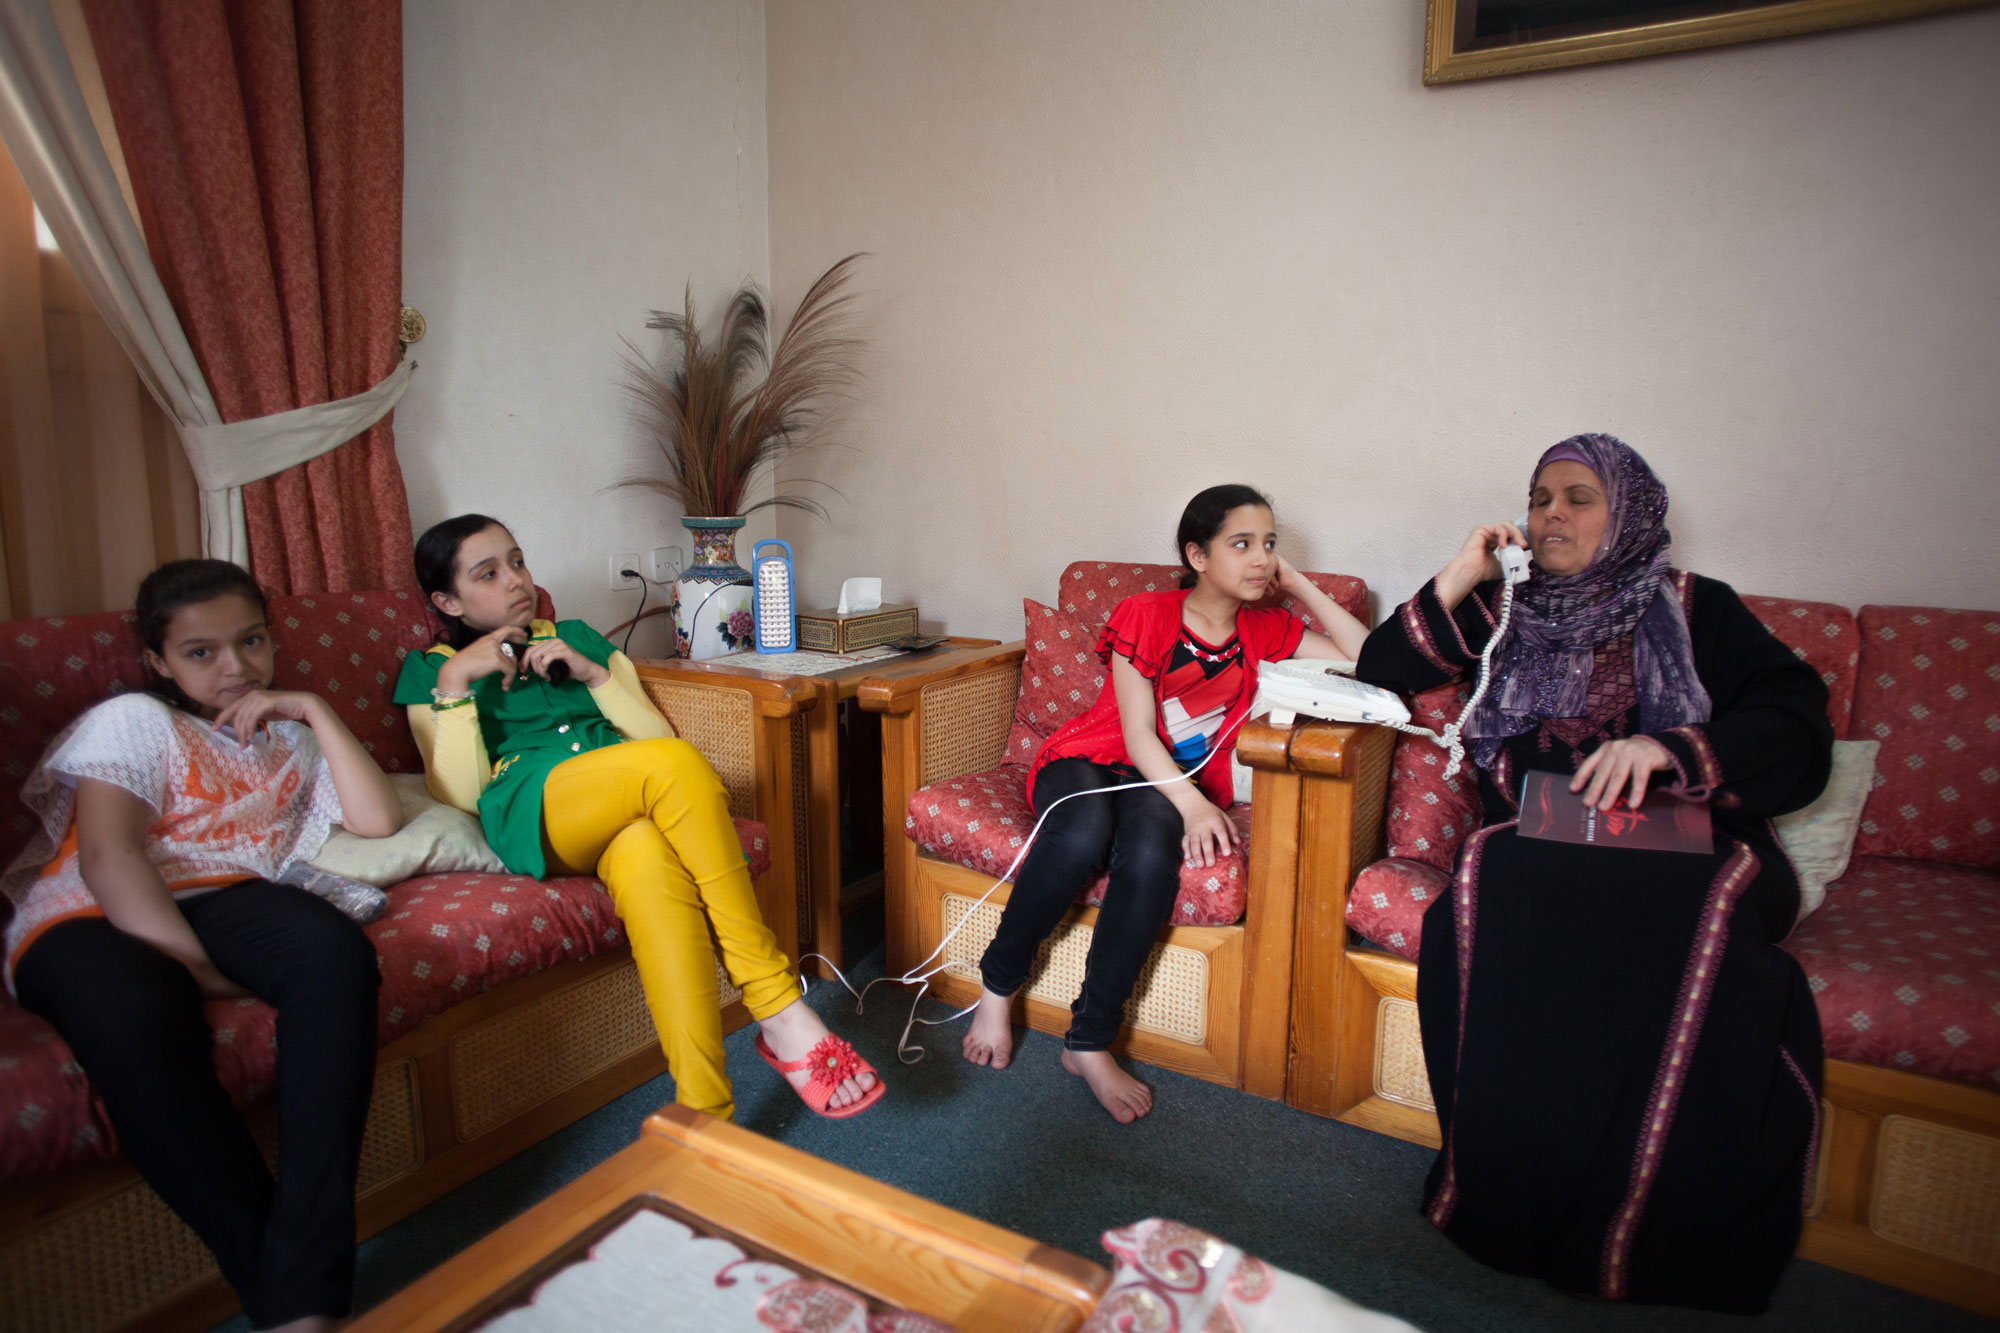 Yusra Abu-Sido and three of her granddaughters in her Gaza Strip home. Photo: Eman Mohammed